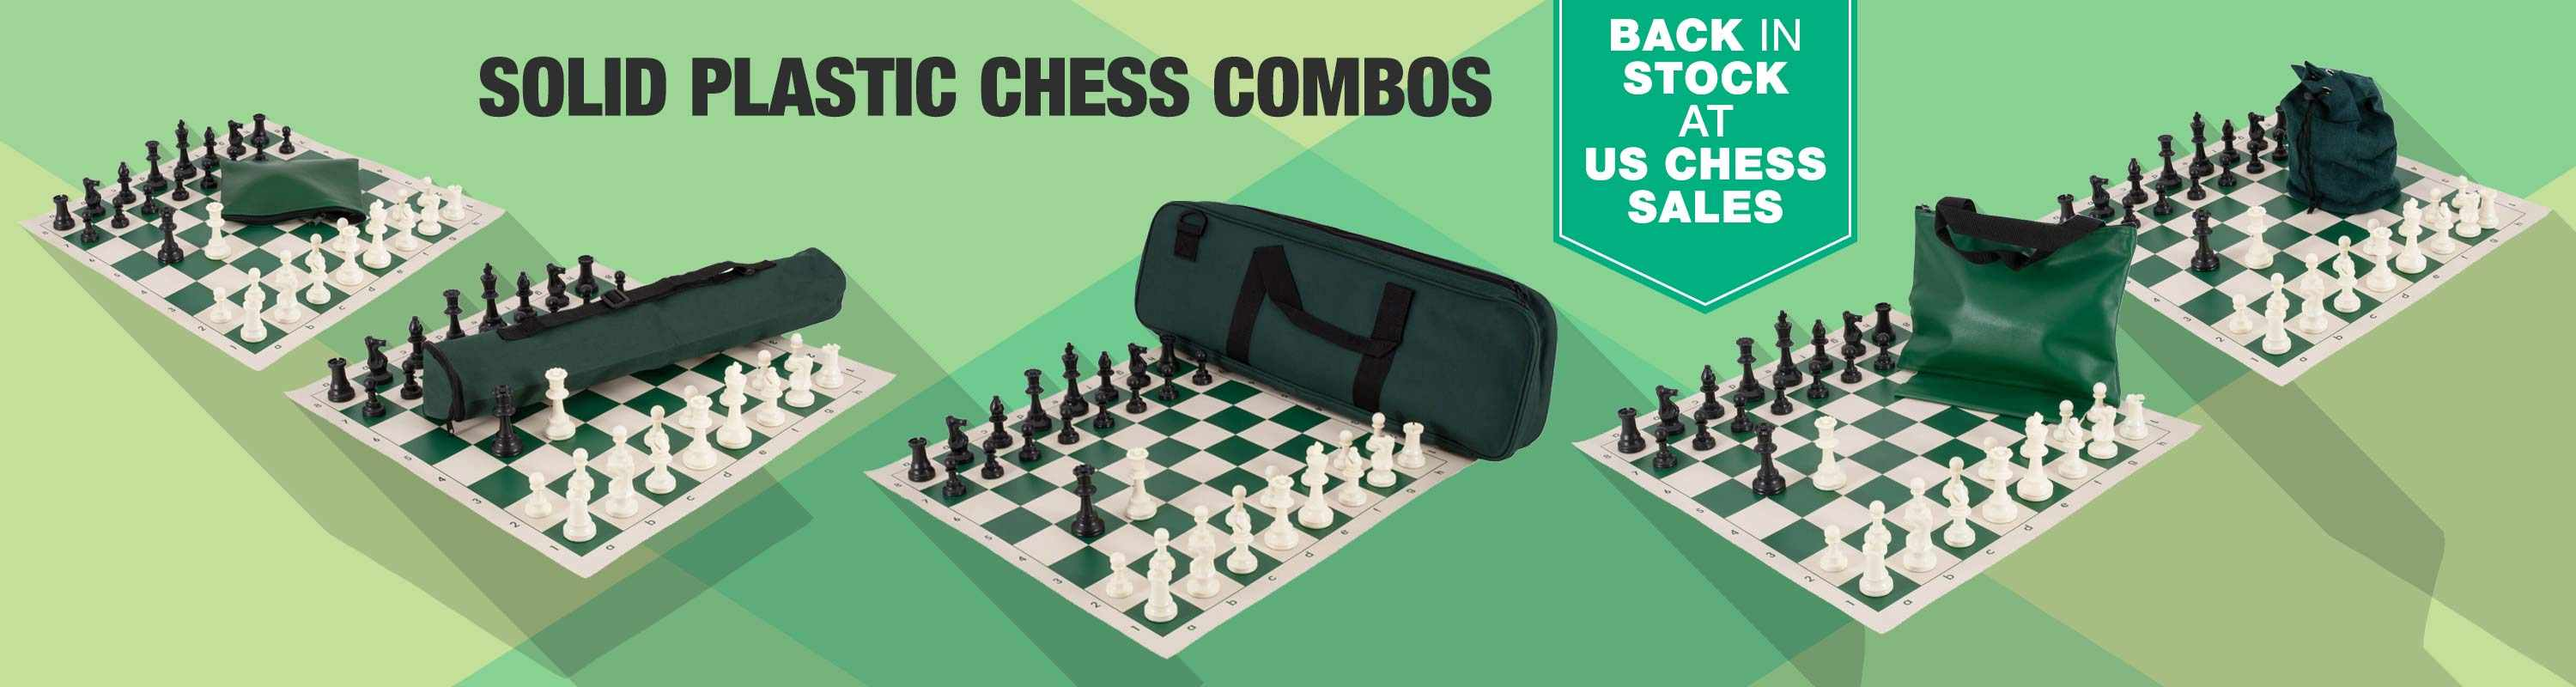 Solid plastic chess combos are back in stock!